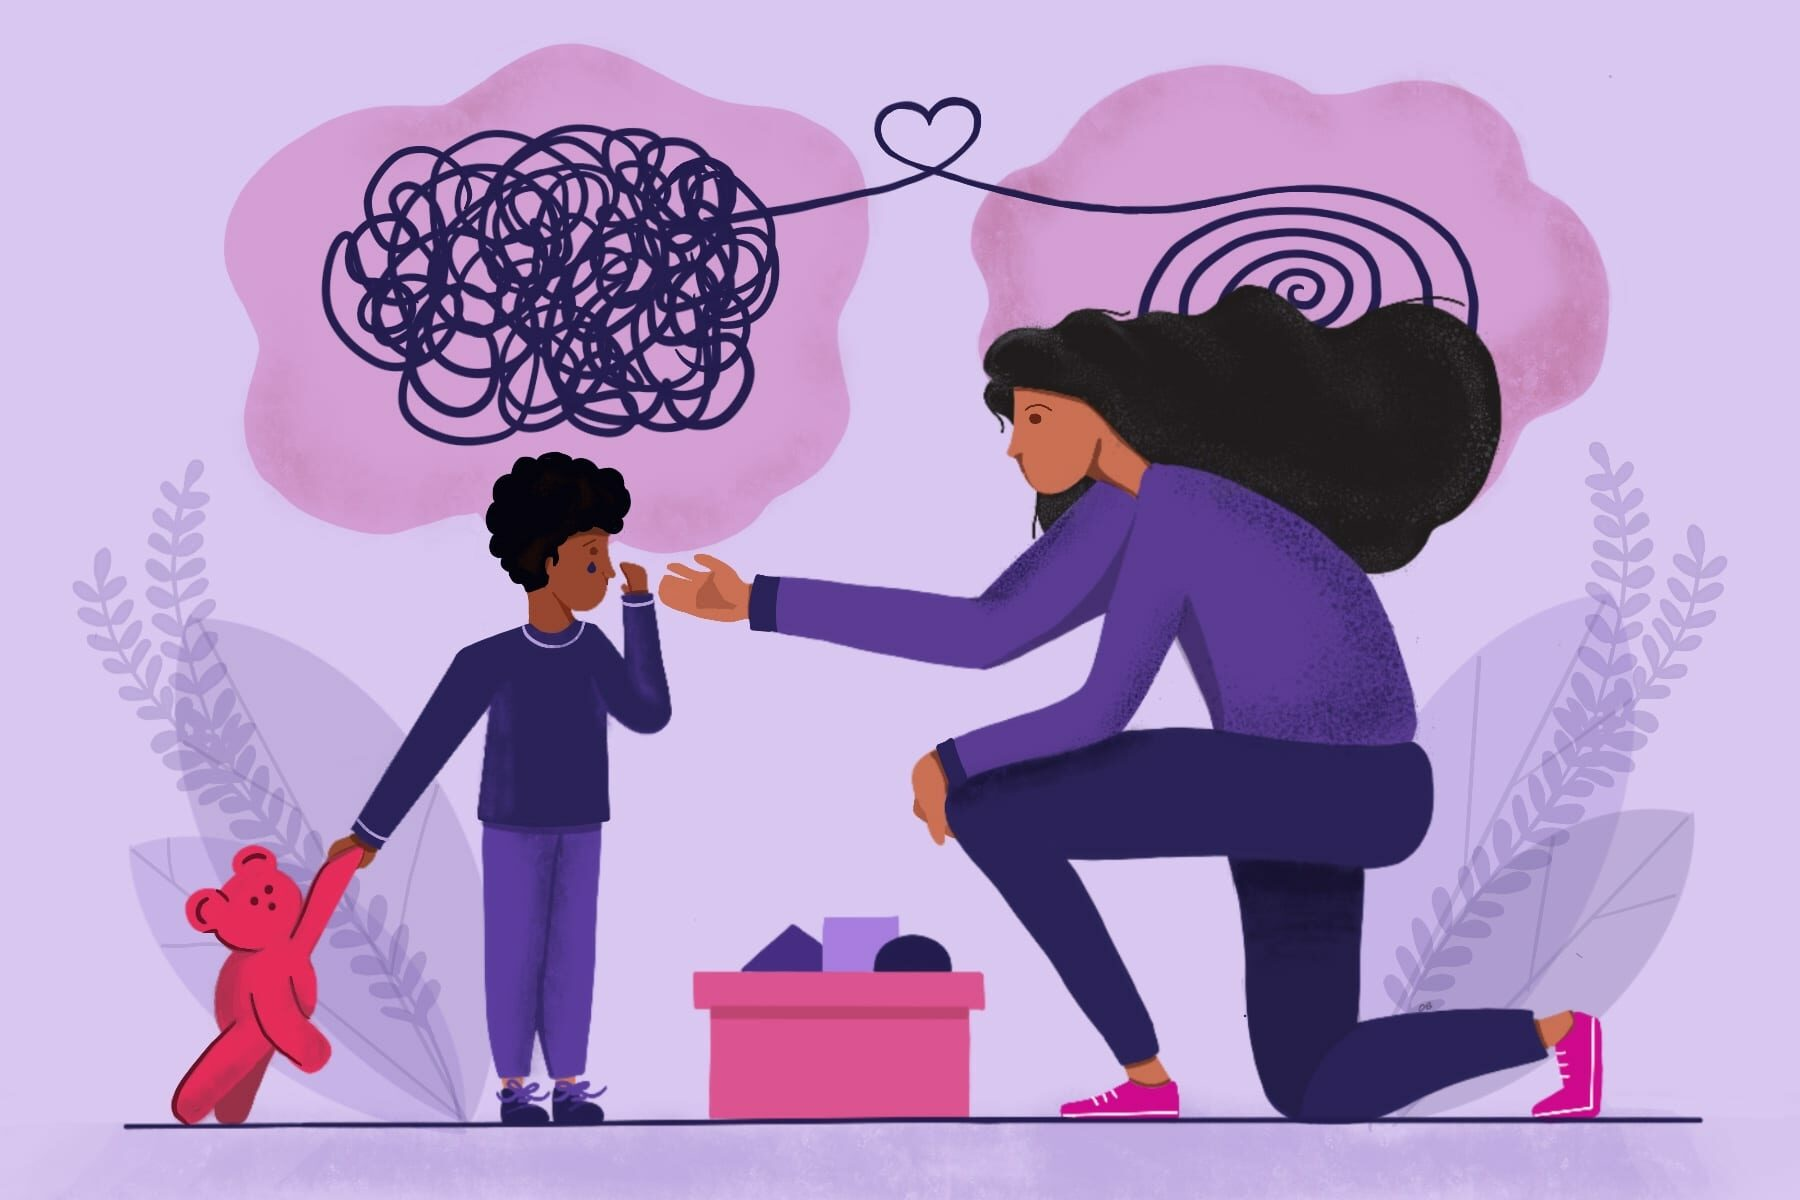 Illustration of a young child and a caretaker.